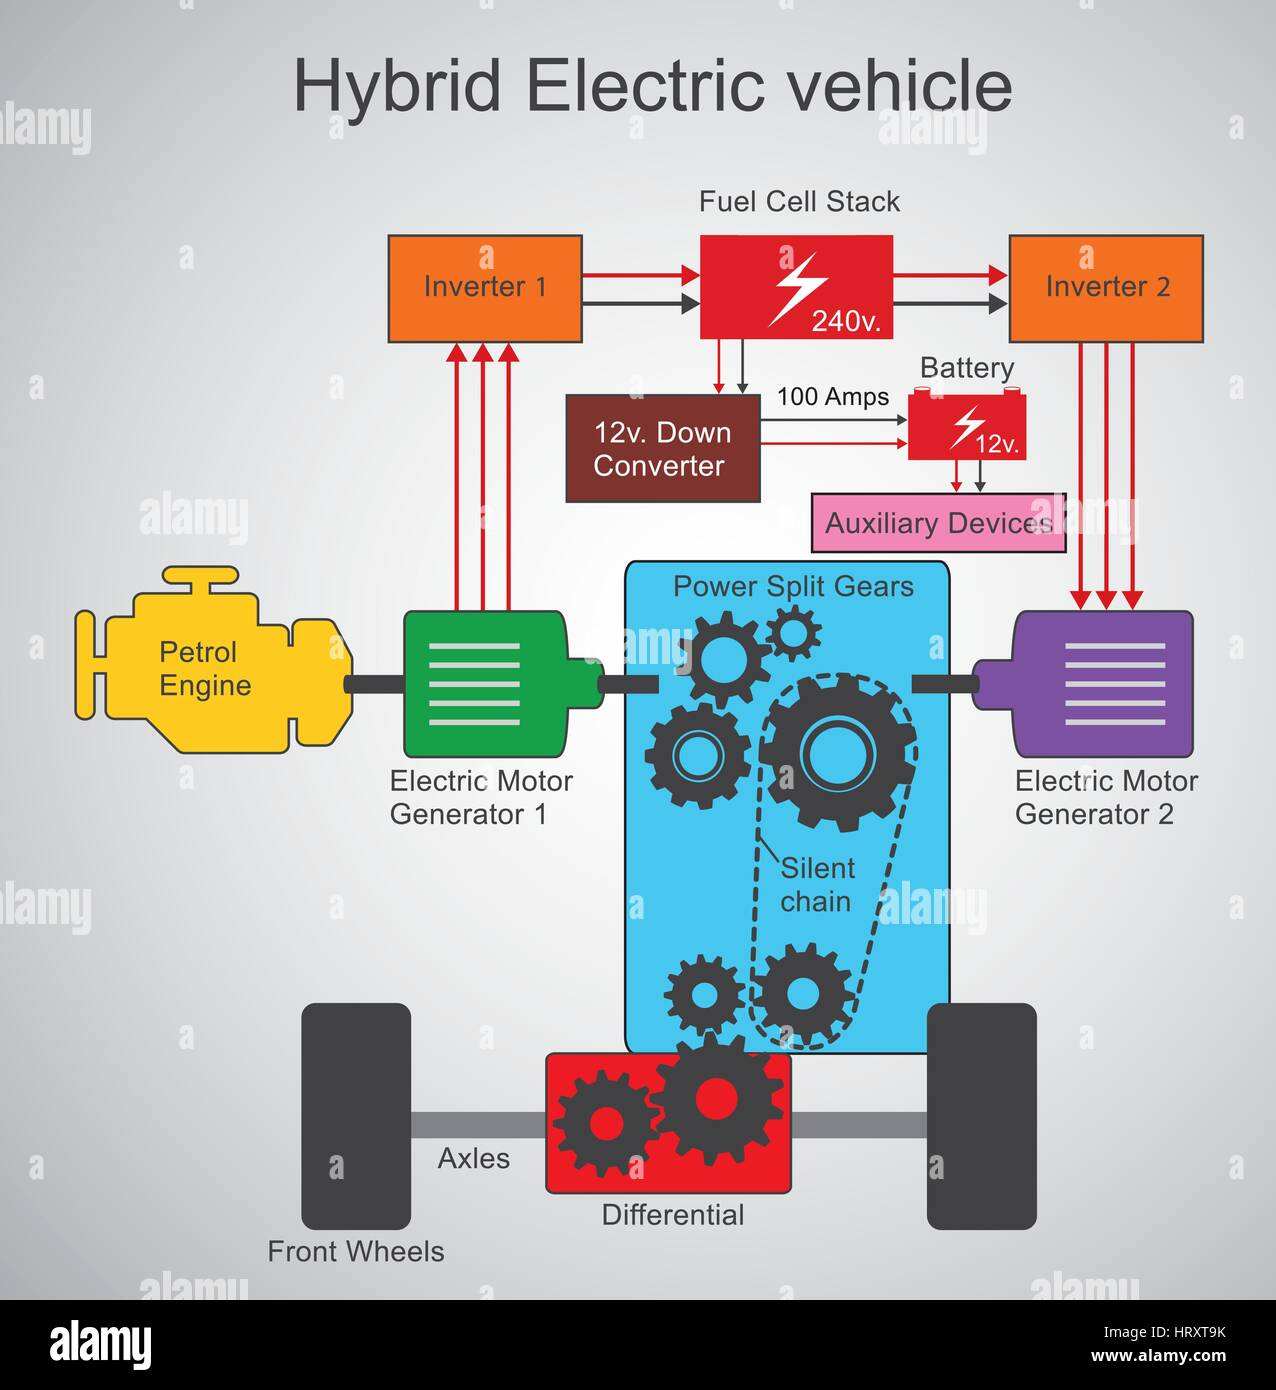 hight resolution of hybrid electric vehicle hybrid electric vehicle hev is a type of hybrid vehicle